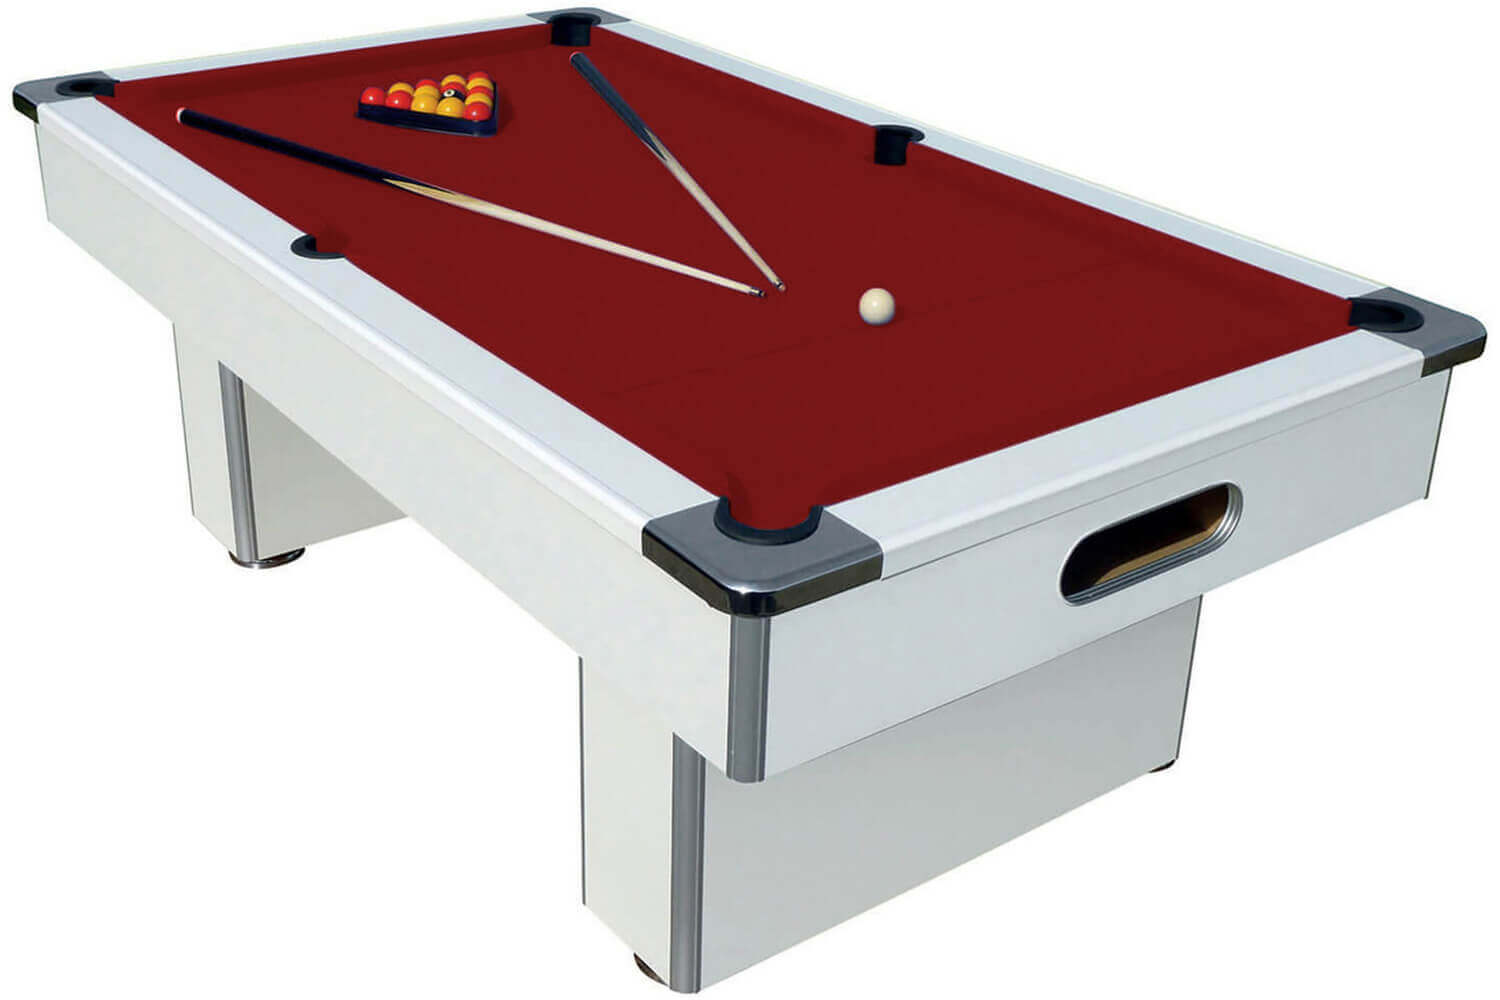 Slimline pool table 6 ft 7 ft liberty games for 10 pool table